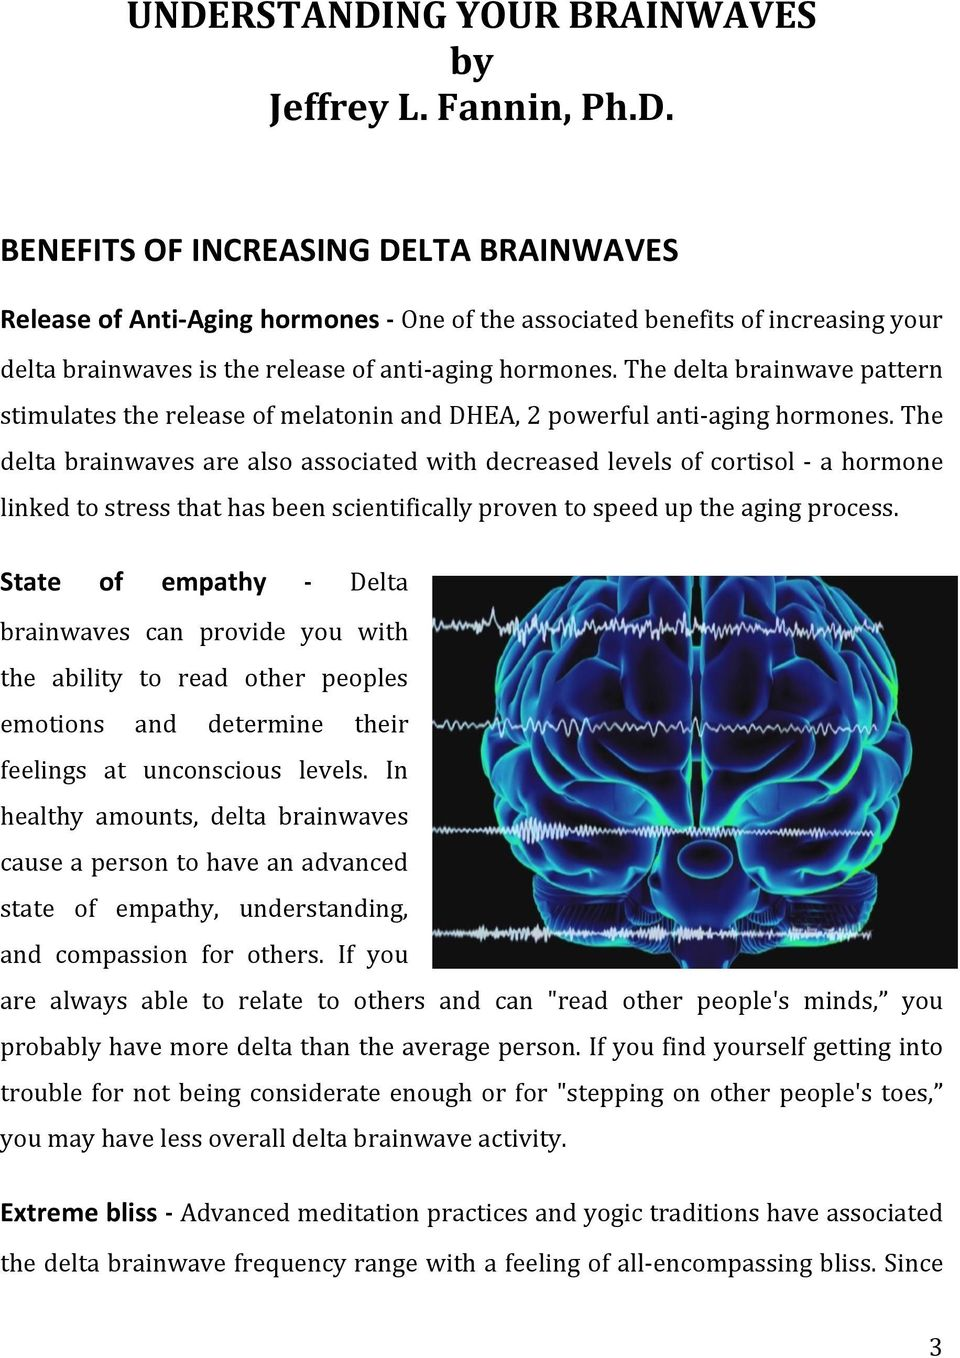 The delta brainwaves are also associated with decreased levels of cortisol - a hormone linked to stress that has been scientifically proven to speed up the aging process.